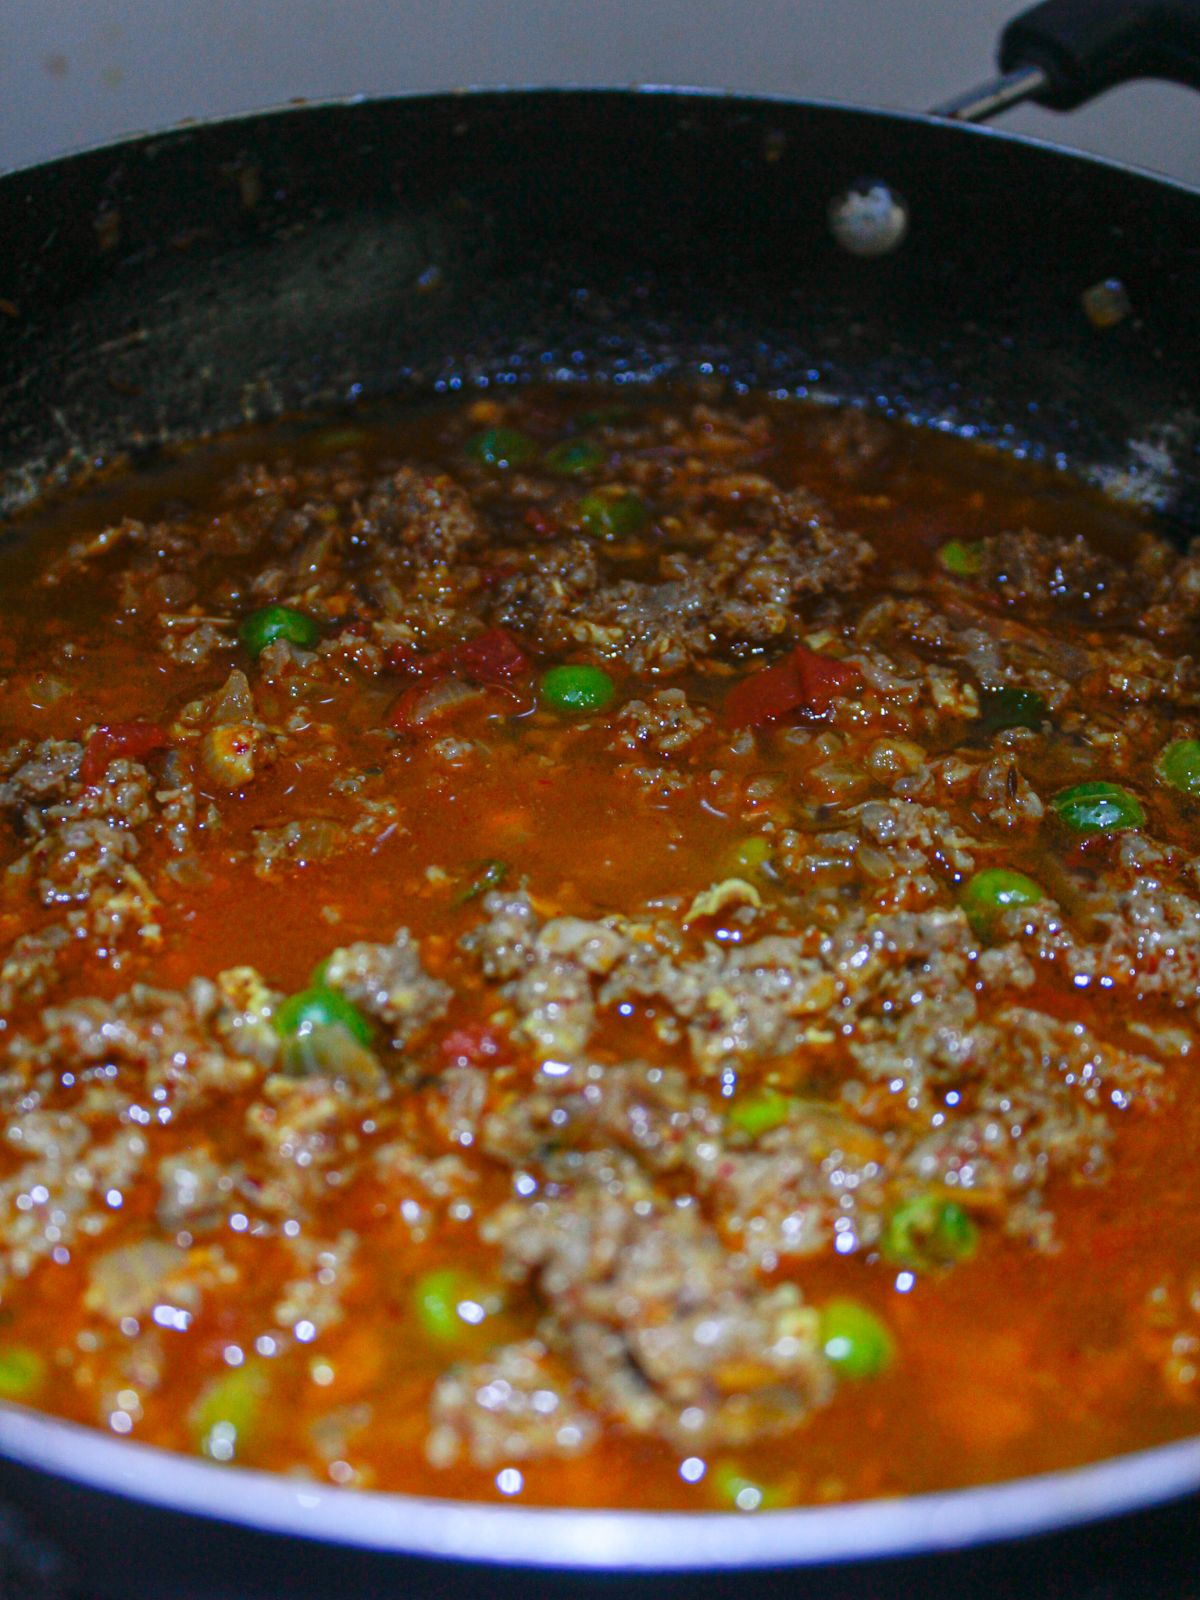 Mutton curry simmering in sauce in skillet